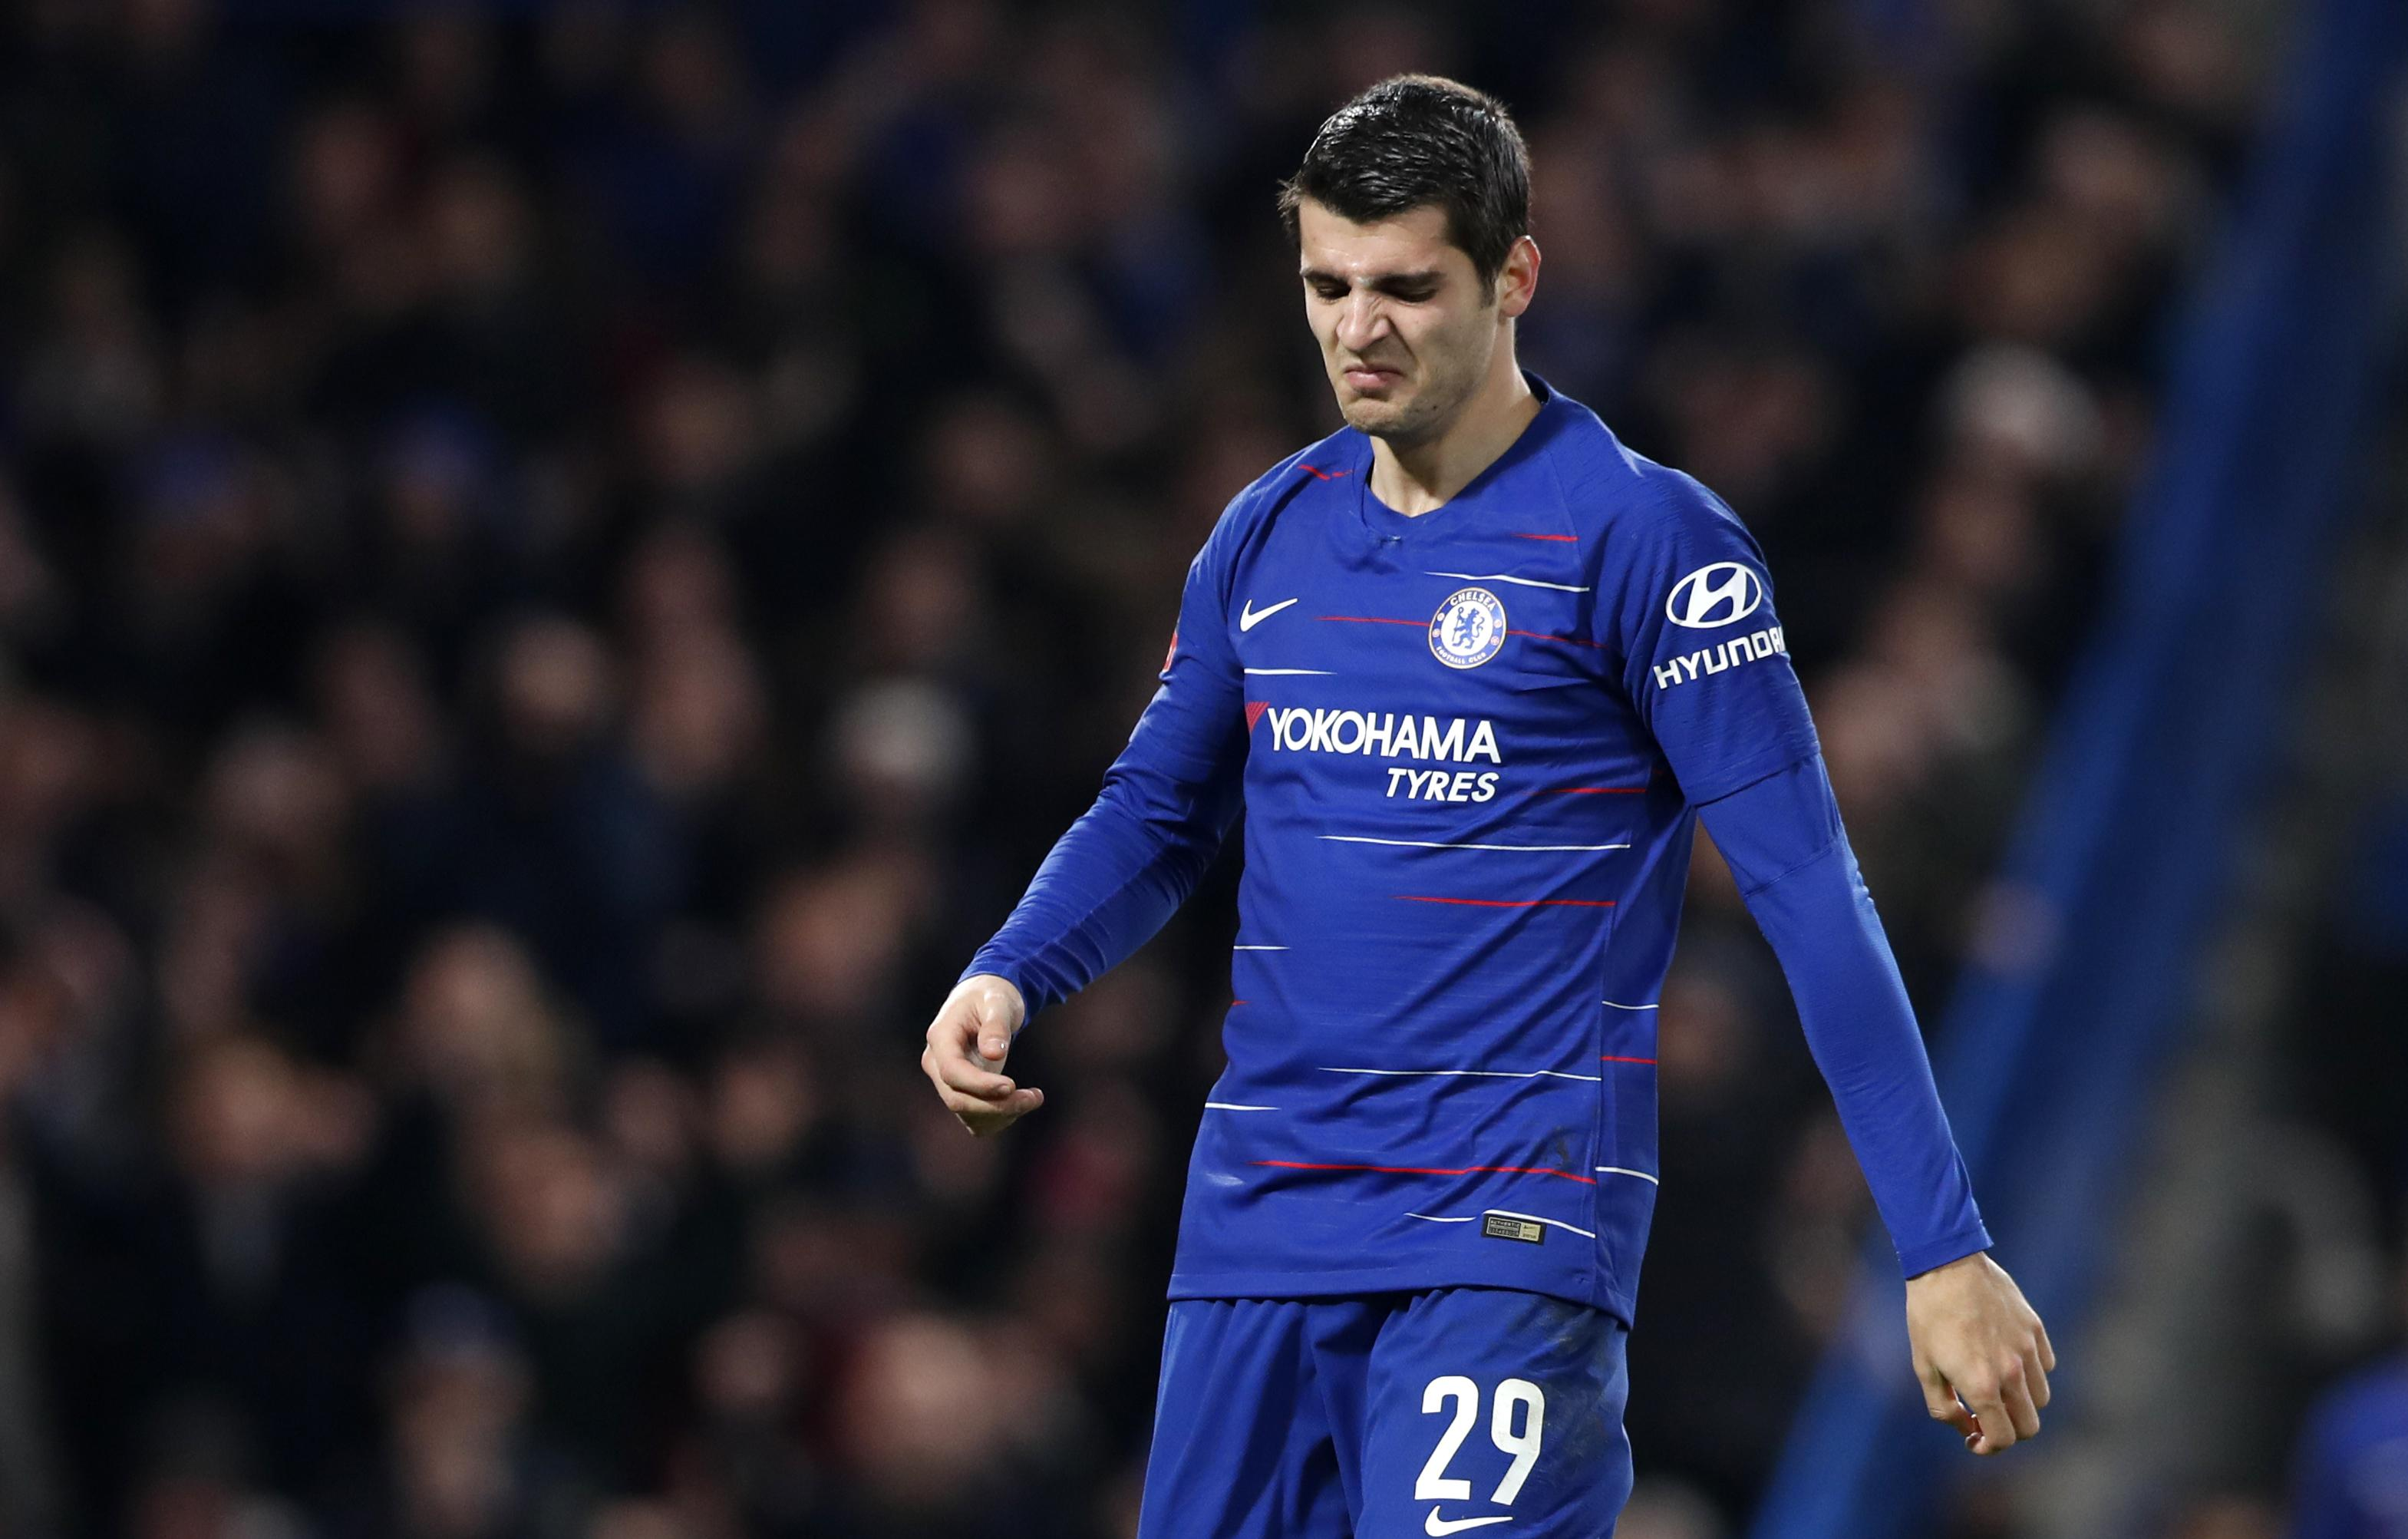 Chelsea striker Alvaro Morata has struggled for form since joining from Atletico Madrid